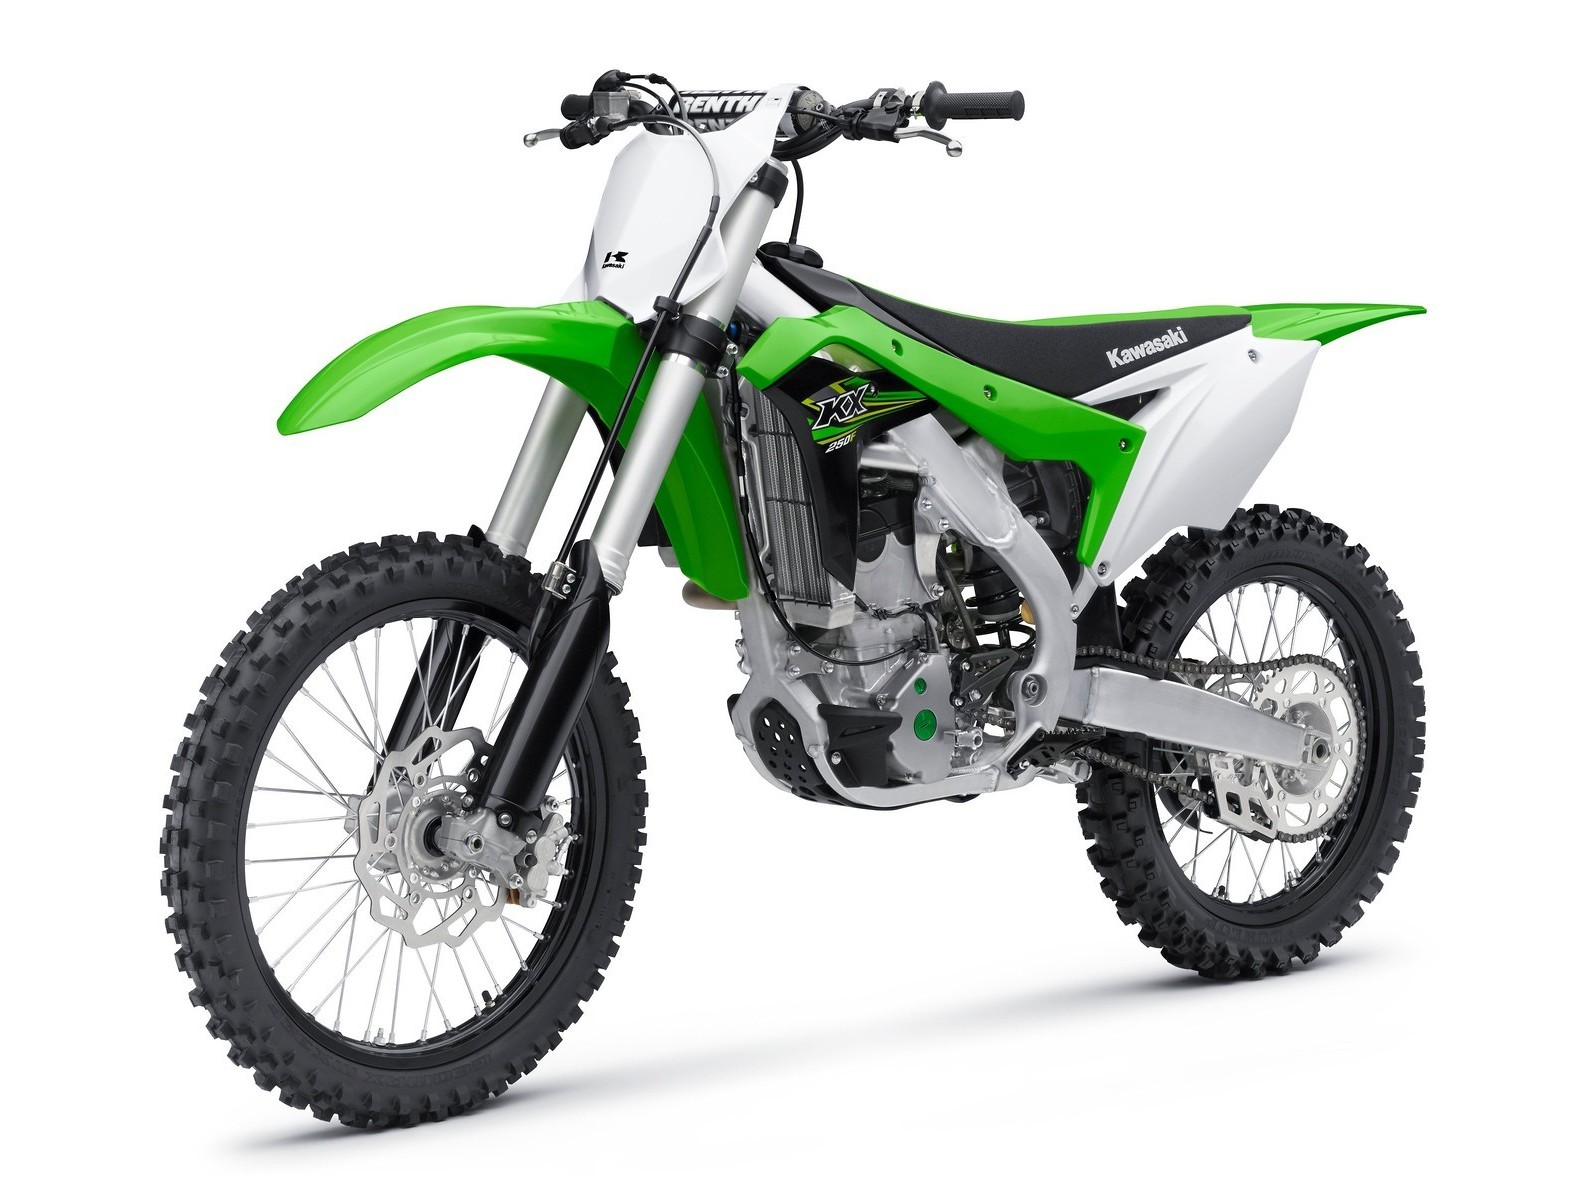 2017 Kawasaki Kx250f Reviews Comparisons Specs